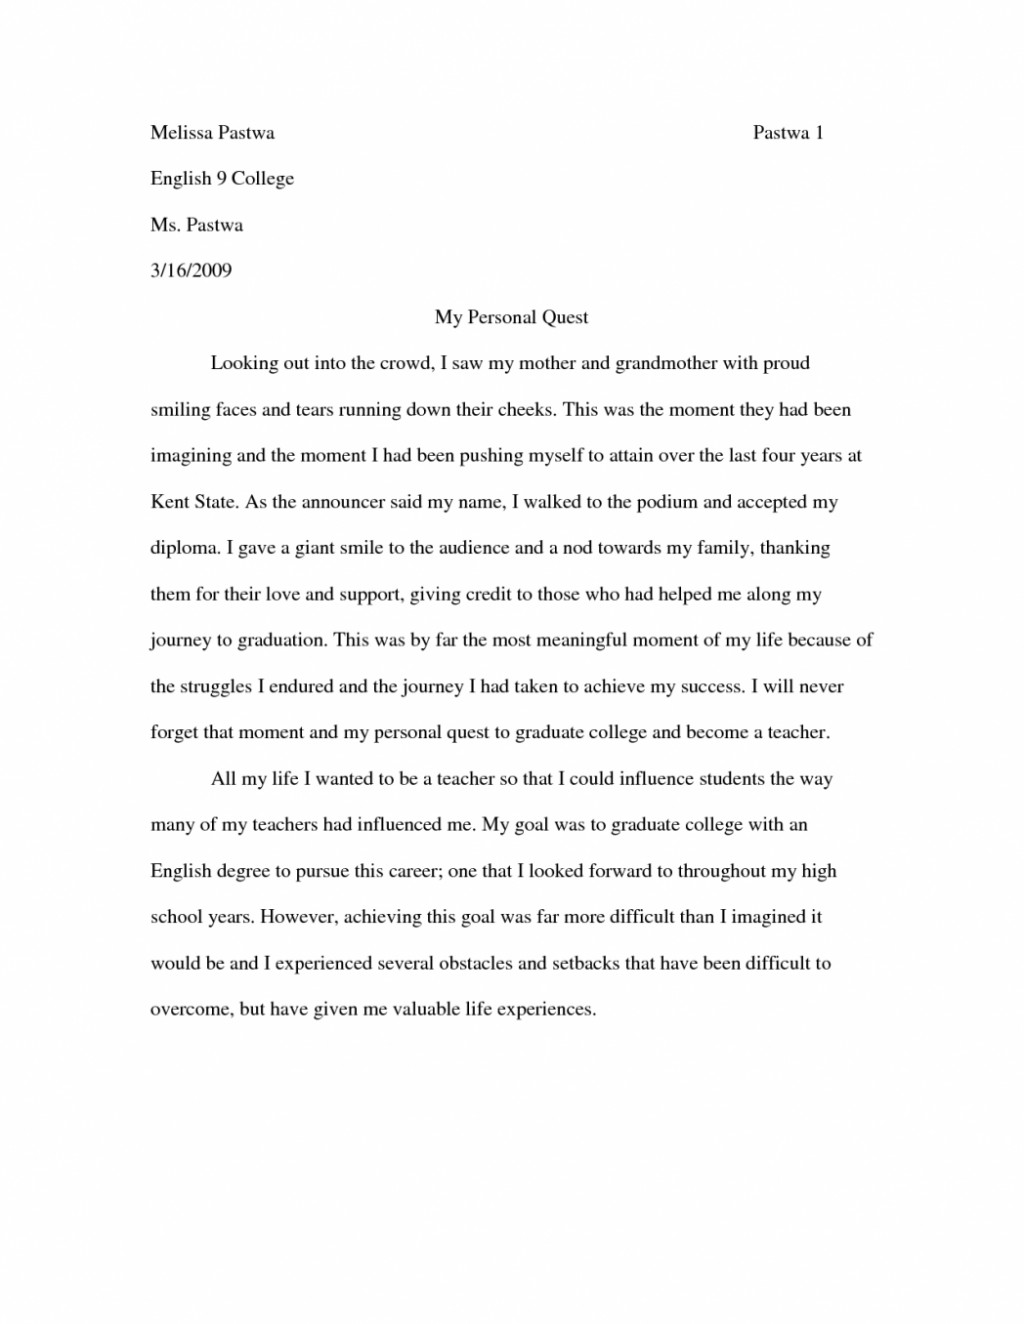 015 Read My Essay Sample Of College Goal Blockety Co Application Exam Who Should Someone 1048x1356 Unusual Reddit For Free Online Large